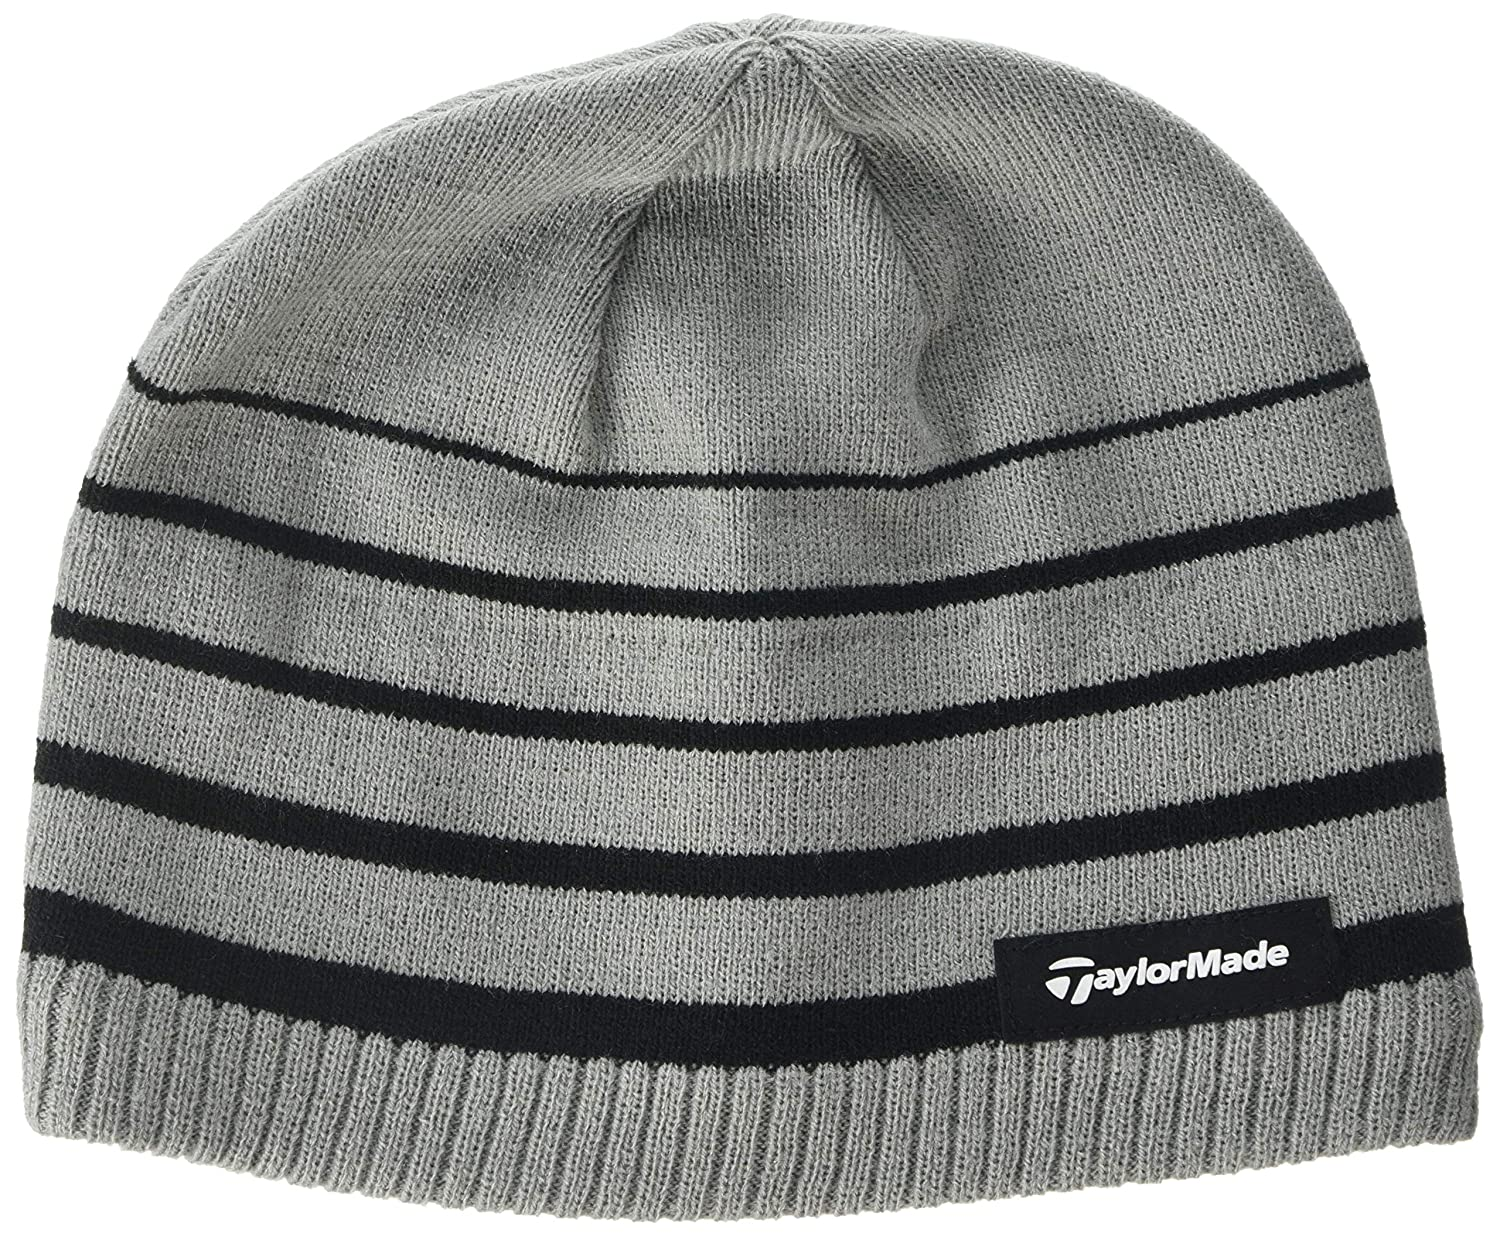 99140297 TaylorMade Golf TM Stripe Beanie, Black, One Size: Amazon.co.uk: Sports &  Outdoors